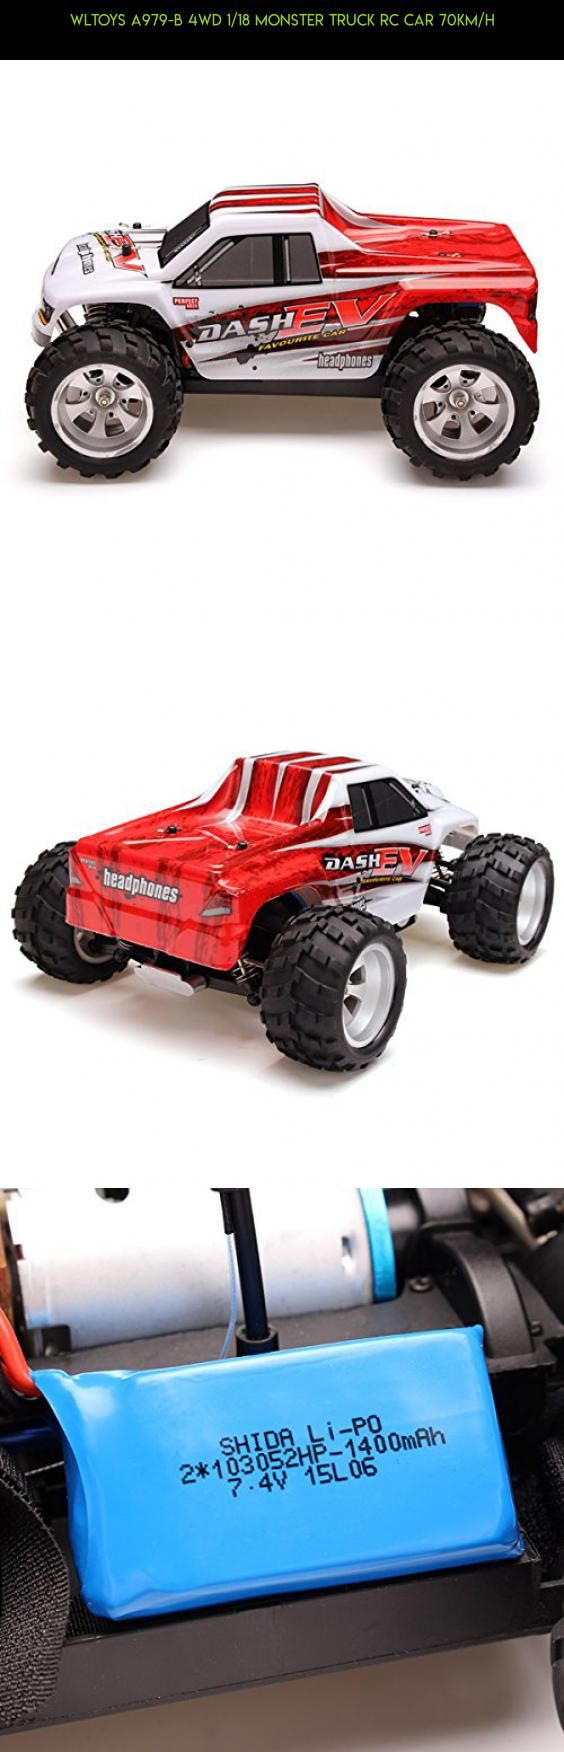 WLtoys A979-B 4WD 1/18 Monster Truck RC Car 70km/h #wltoys #racing #drone #technology #camera #kit #fpv #gadgets #plans #products #monster #tech #truck #parts #shopping